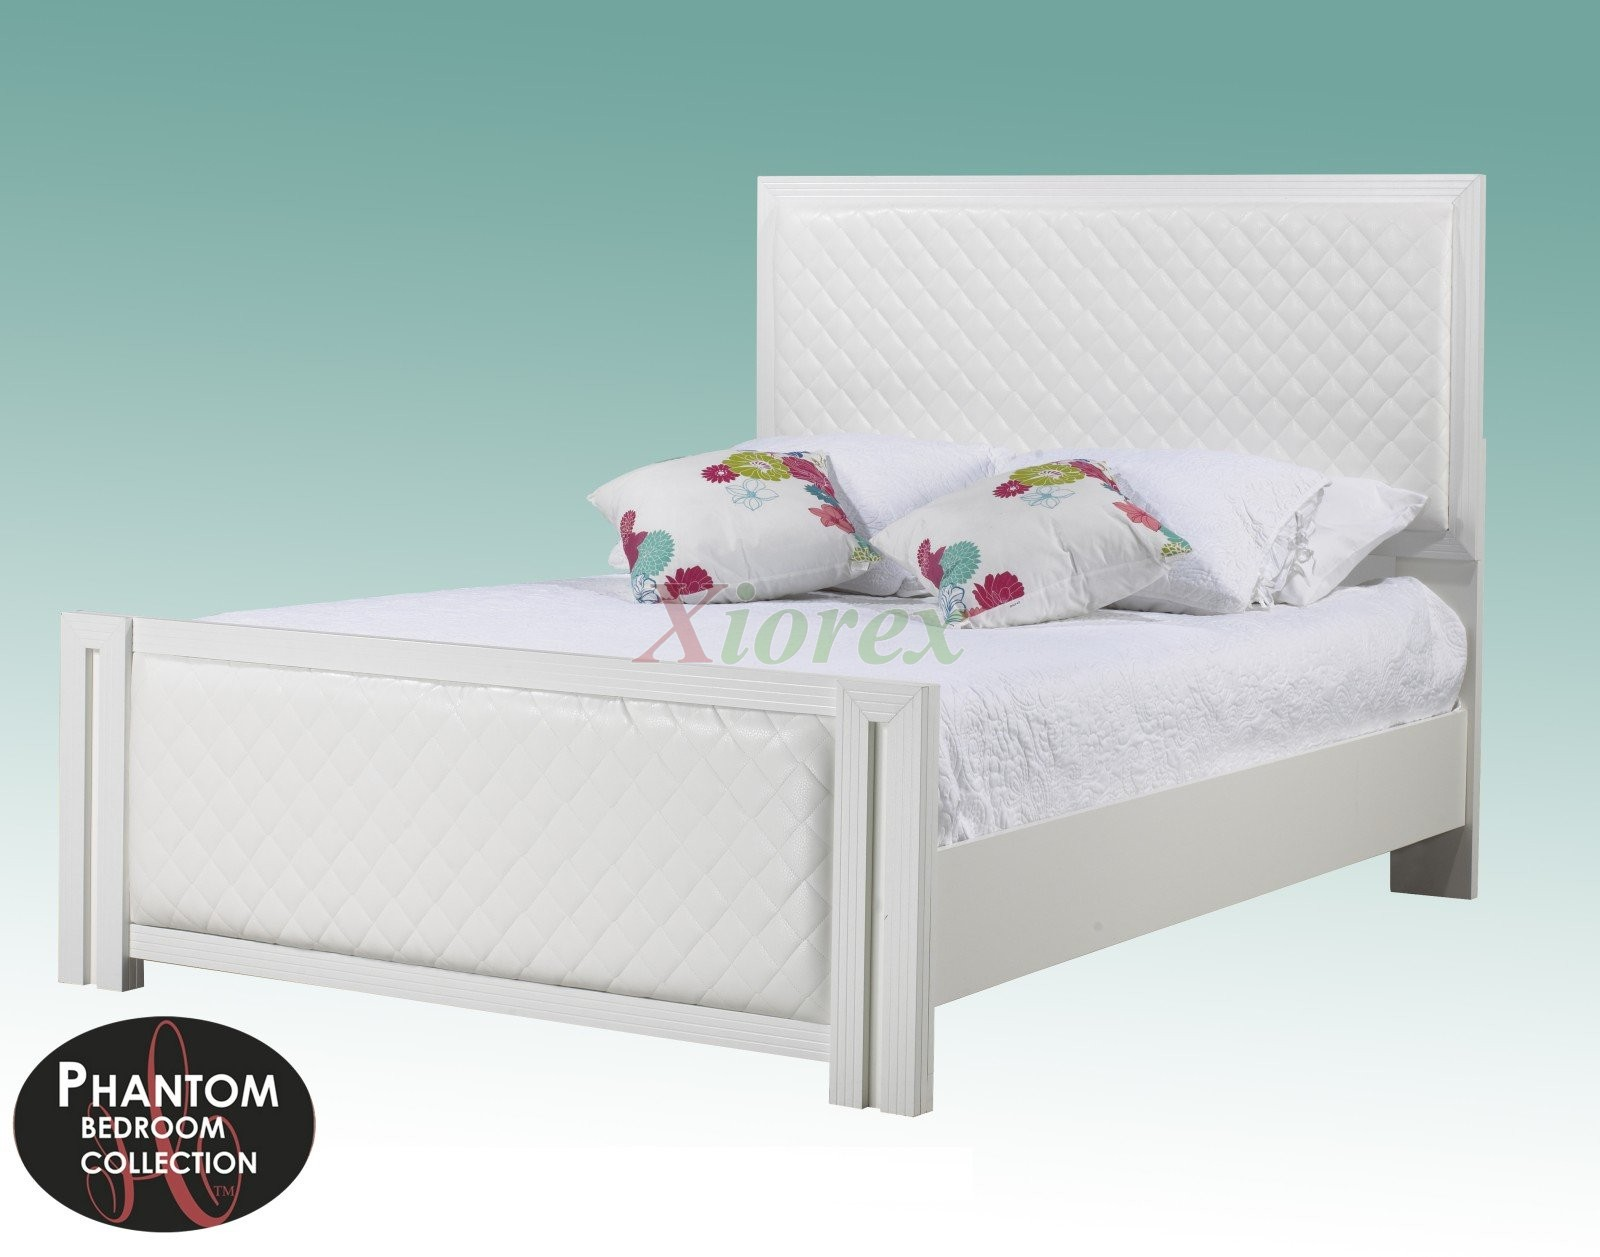 white bed frame life line phantom railbed w leather headboard xiorex